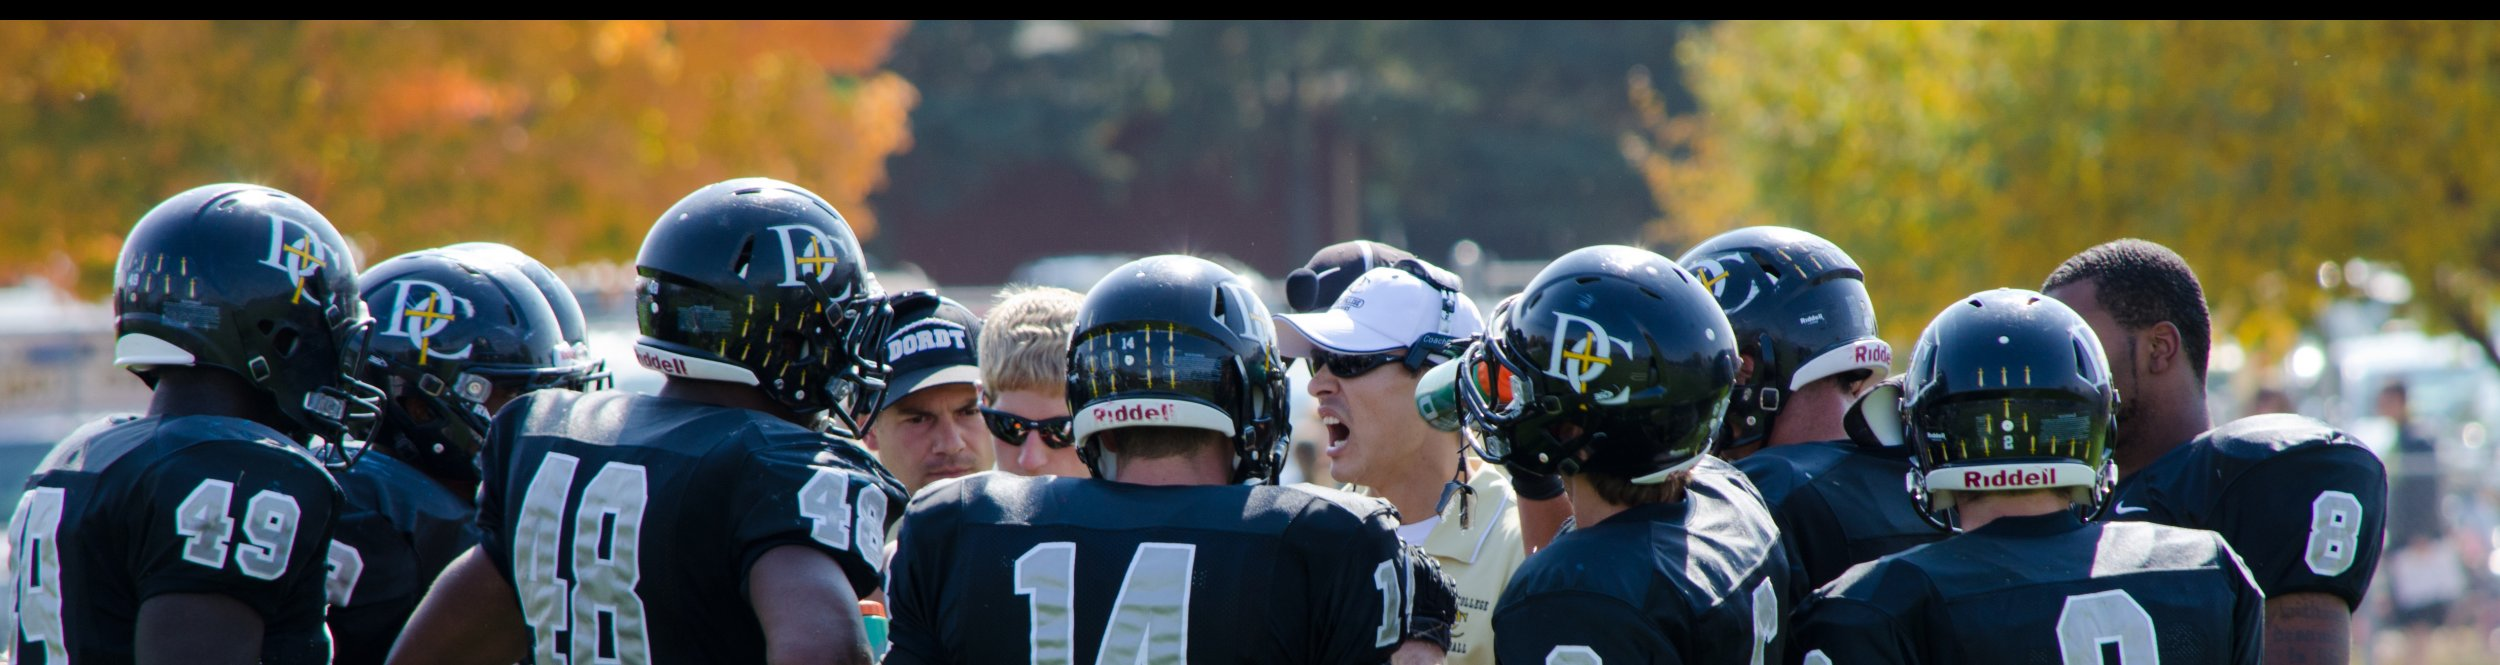 Dordt football players listen to their coach.